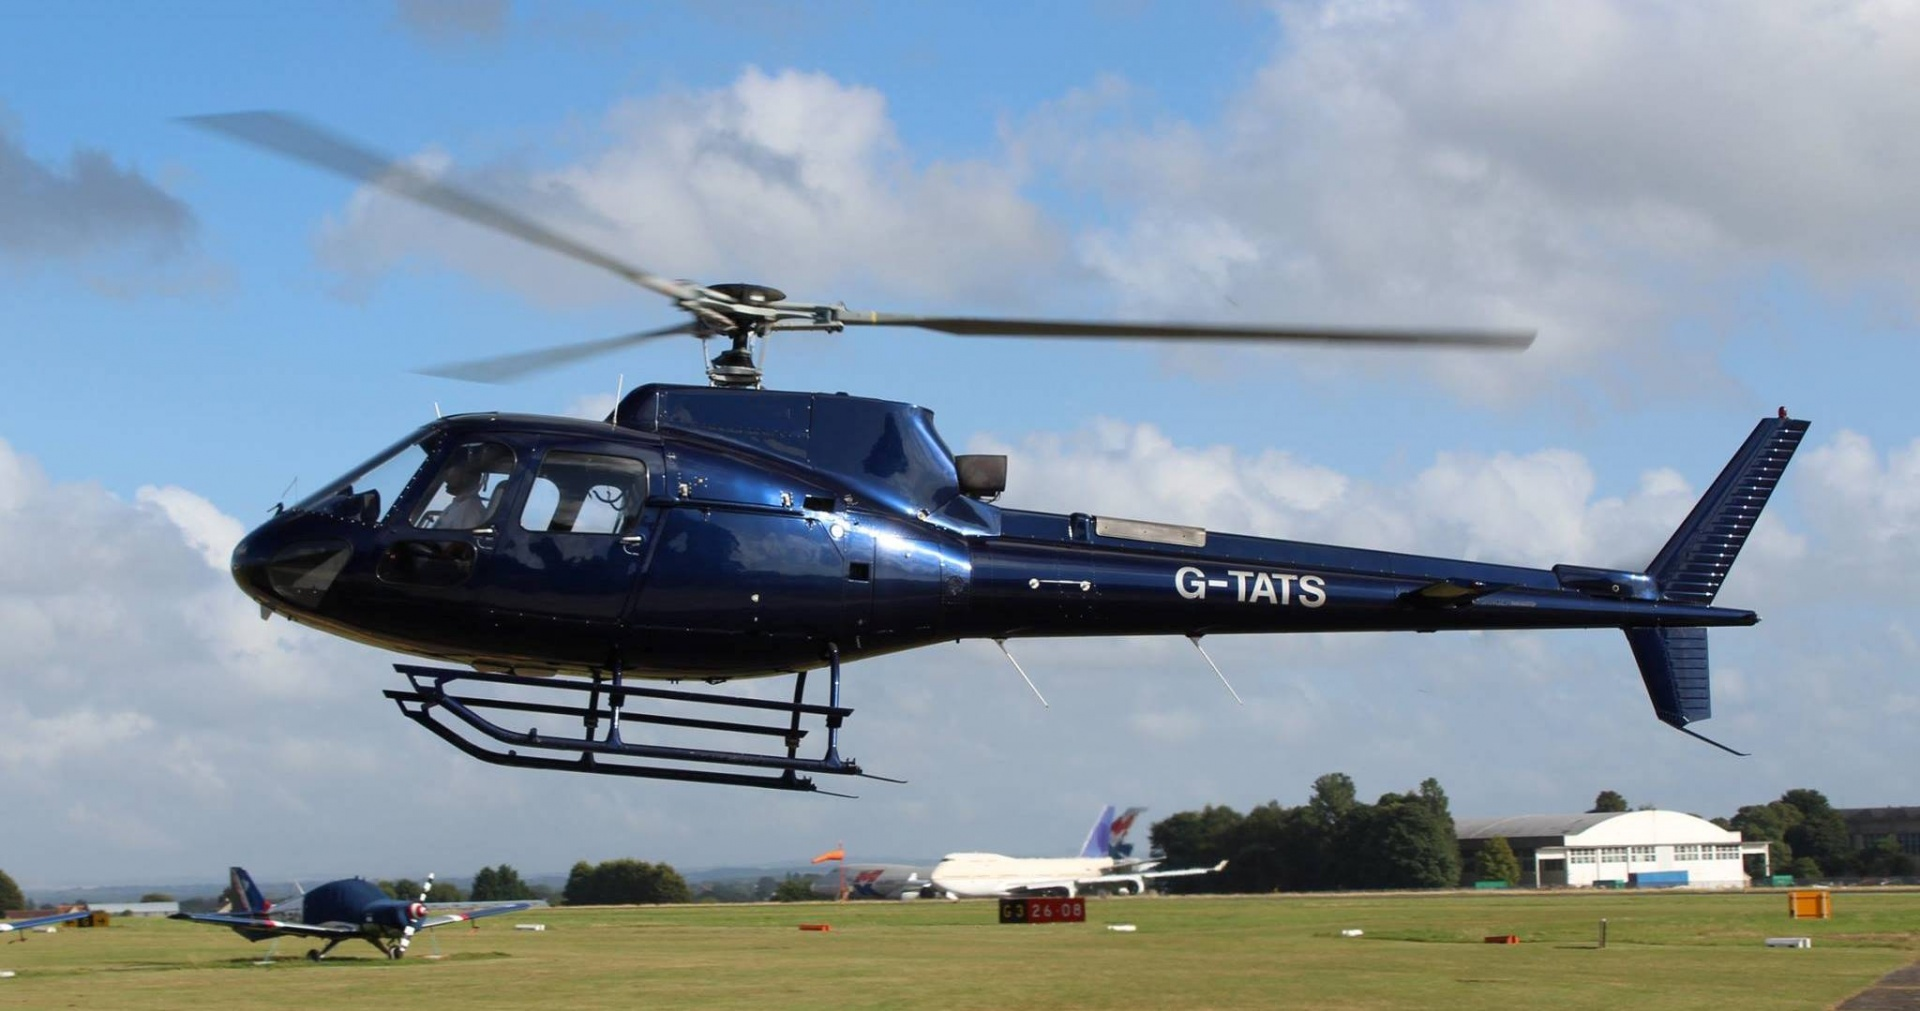 Bridgnorth Shropshire Helicopter Flight 70% Off Now £59 ...